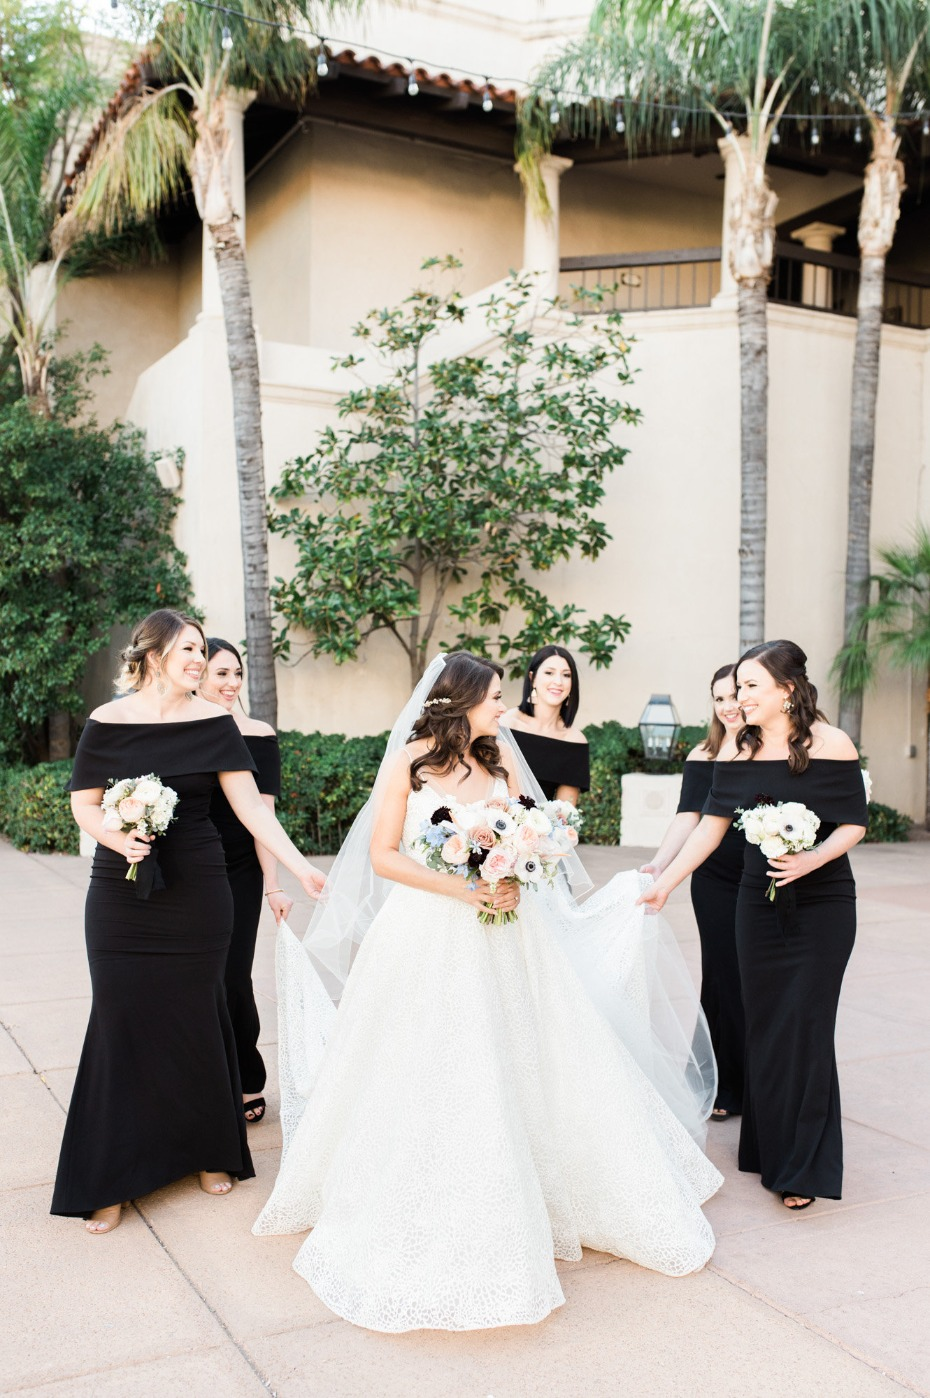 Black off-shoulder bridesmaid dresses from Vince Camuto